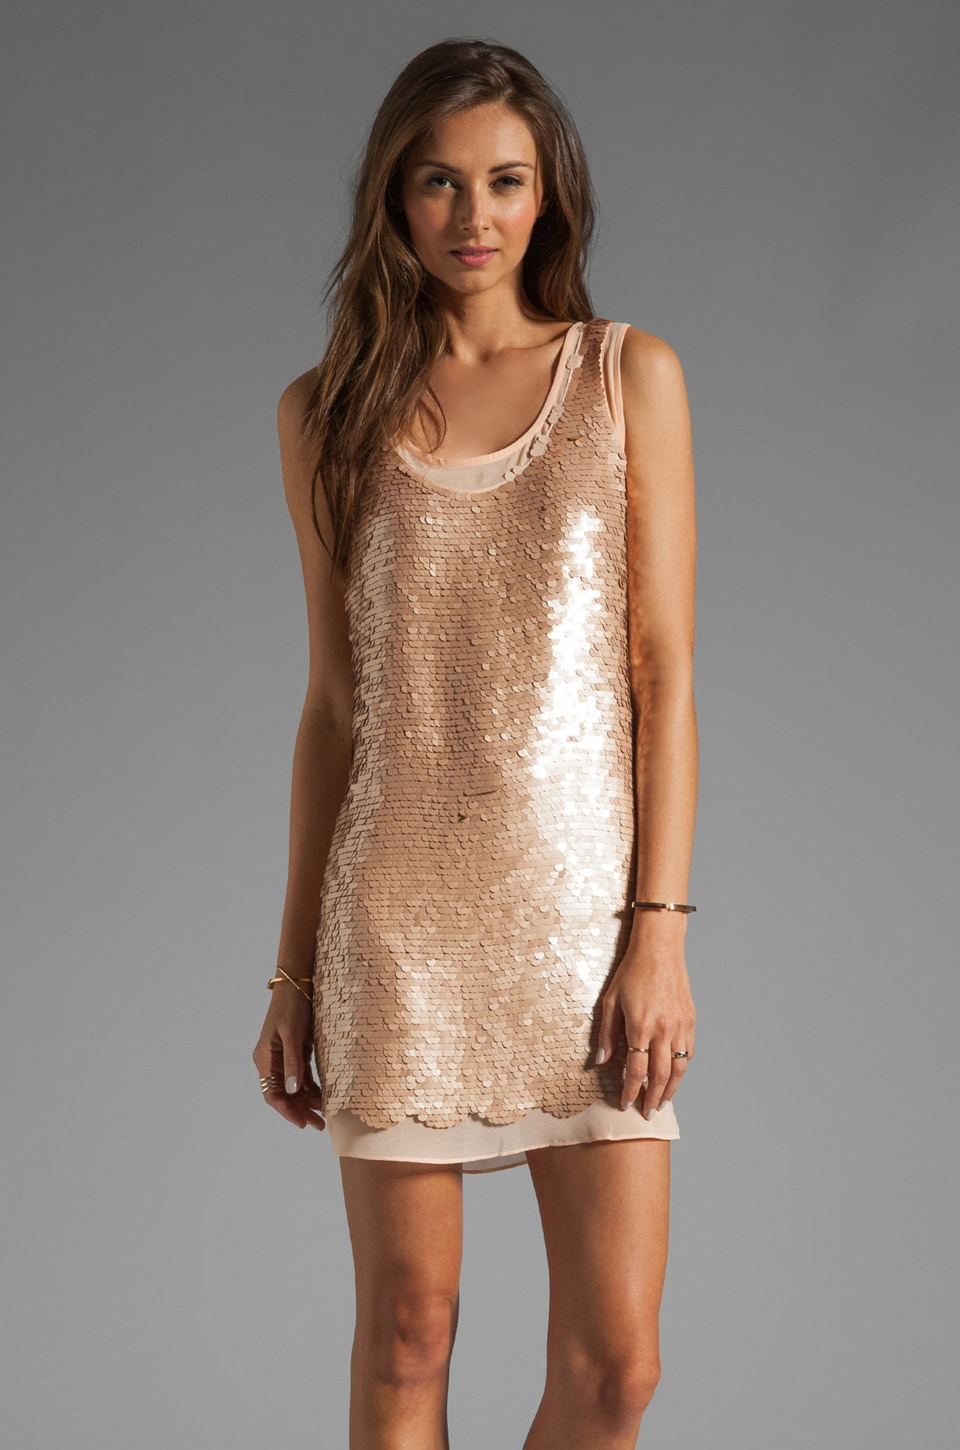 Paper Crown by Lauren Conrad Montauk Sequin Dress in Champagne/Nude